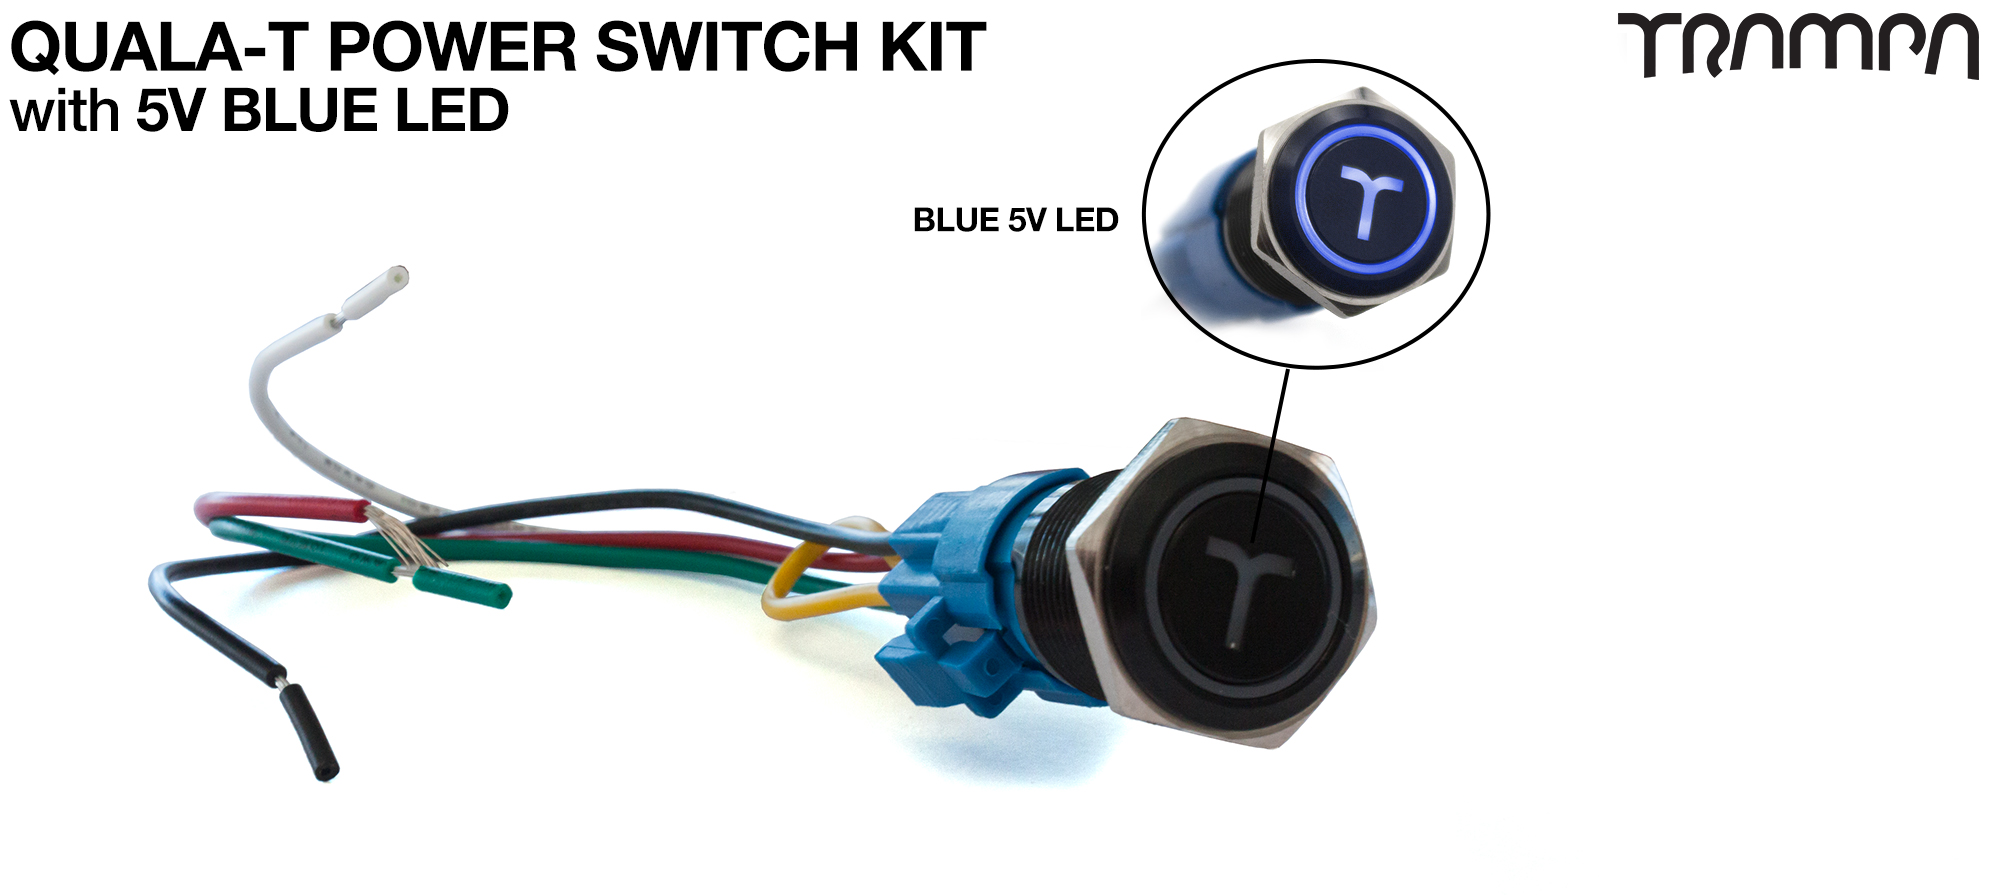 BLUE LED QUALA-T Power Switch Kit with 16mm Fixing Nut & Cable Harness